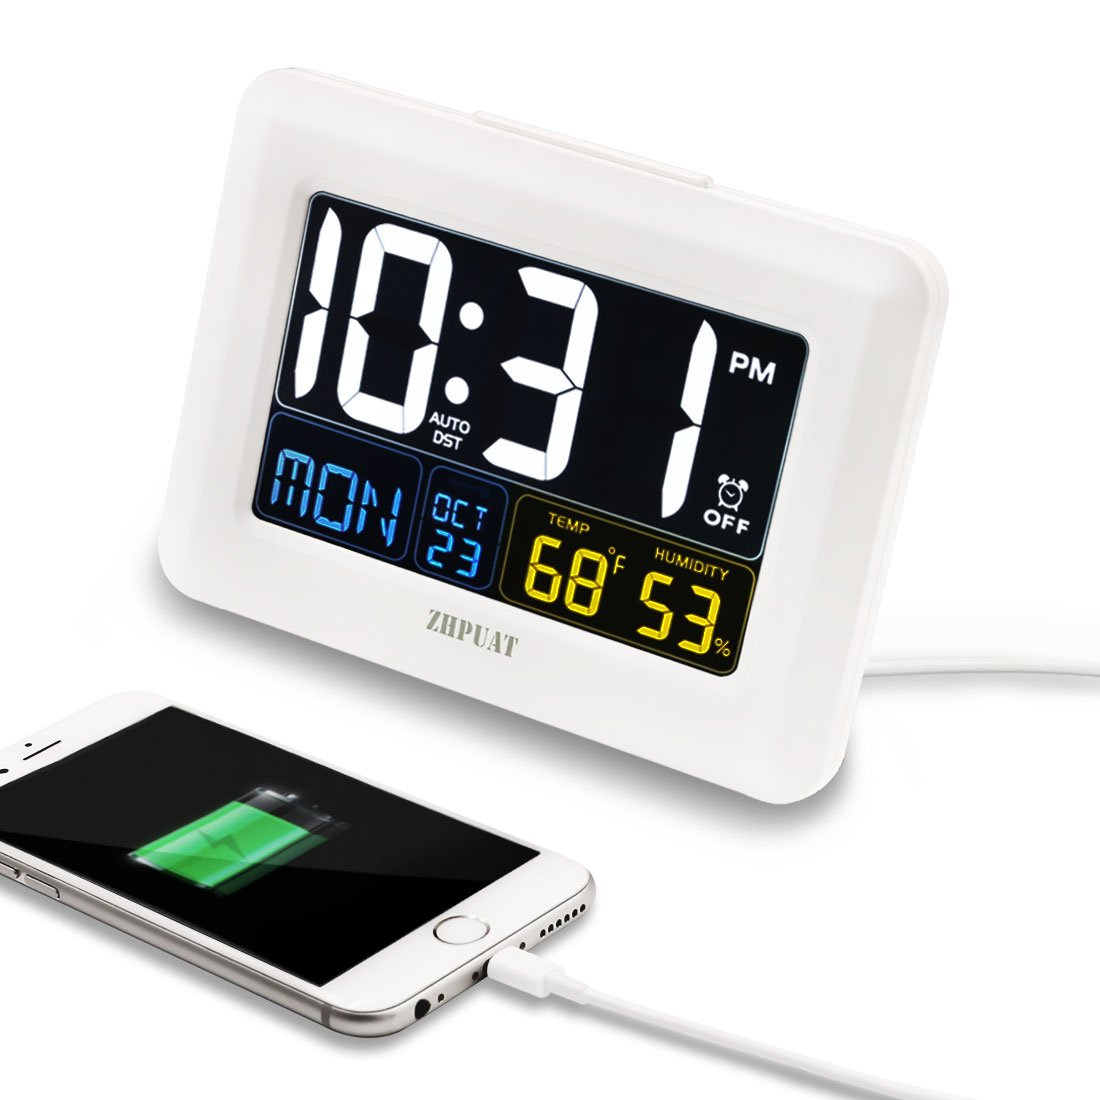 [Upgrade Version] ZHPUAT Digital Alarm Clock Auto Brightness, Both USB Battery Operated, 6 Grades Adjustable Light, 4 Time Zones Auto DST Bedrooms, White